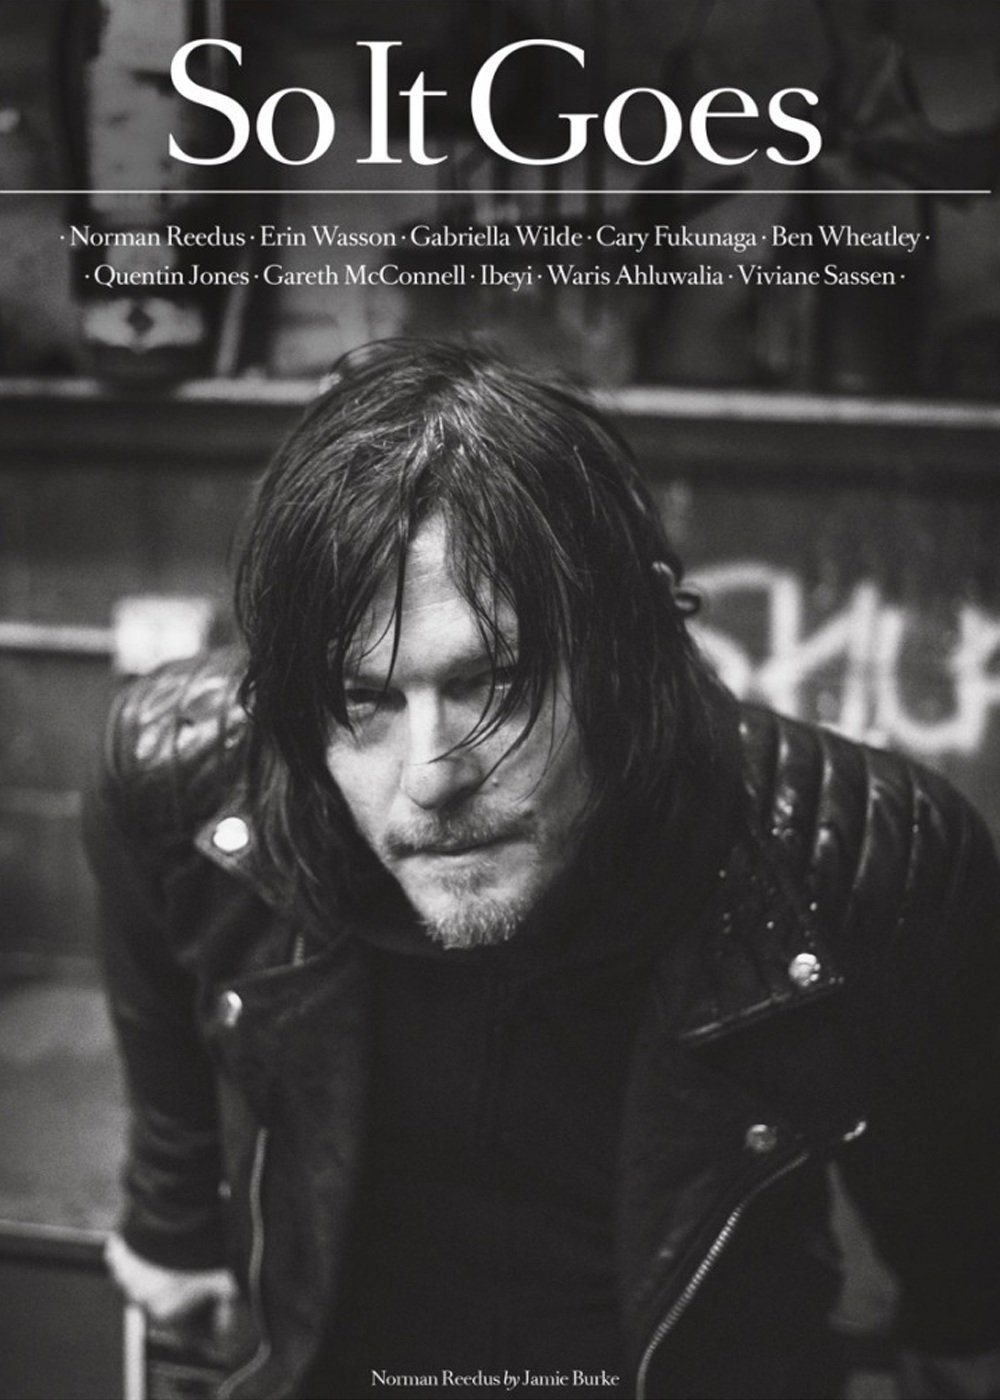 norman-reedus-so-it-goes